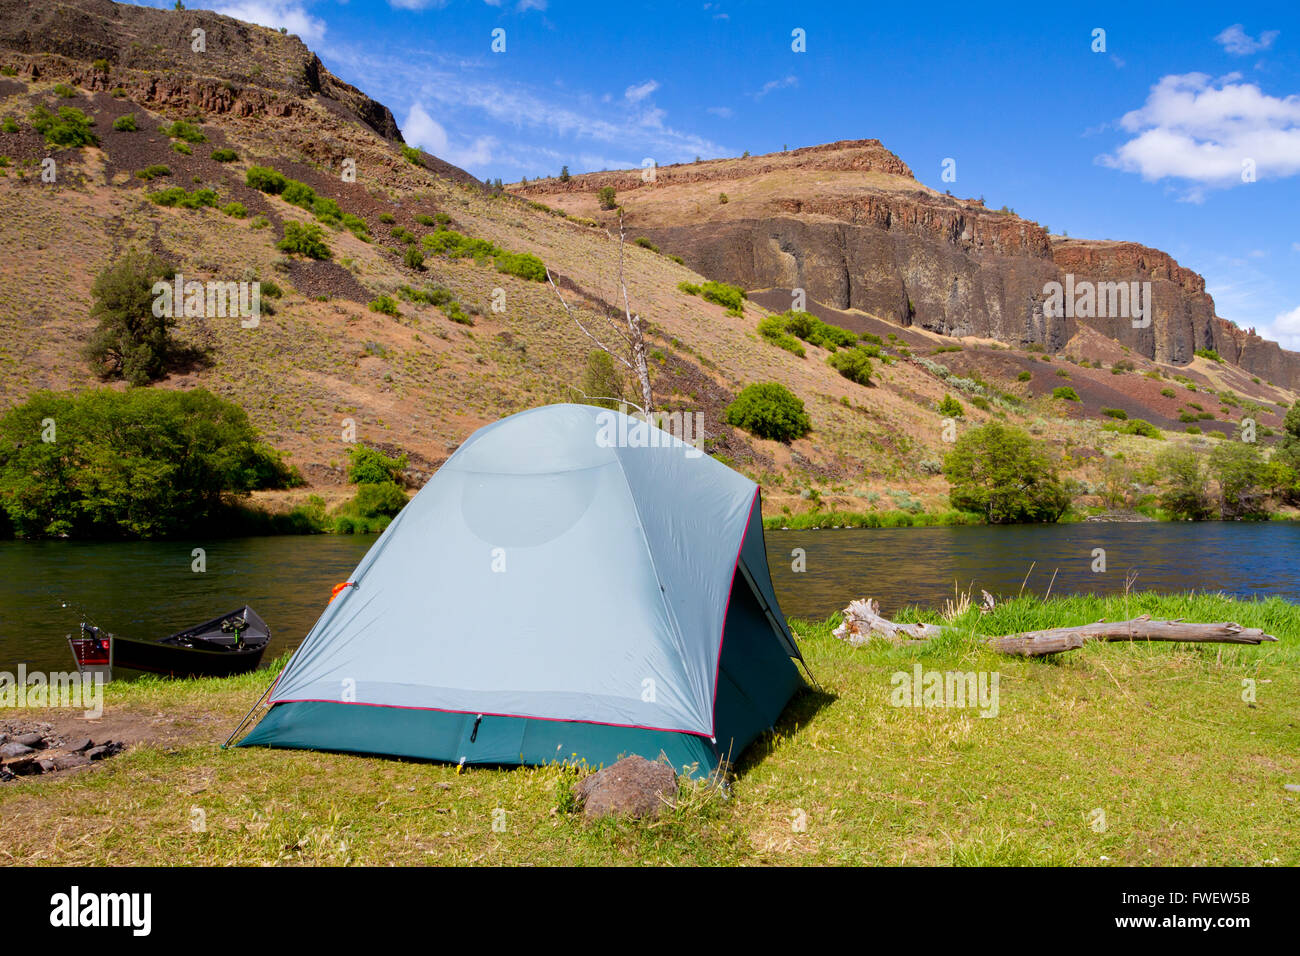 A rustic tent c&site on the Deschutes River in Oregon shows a tent setup next to a boat and the river. This is form a float ca : rustic tent - memphite.com